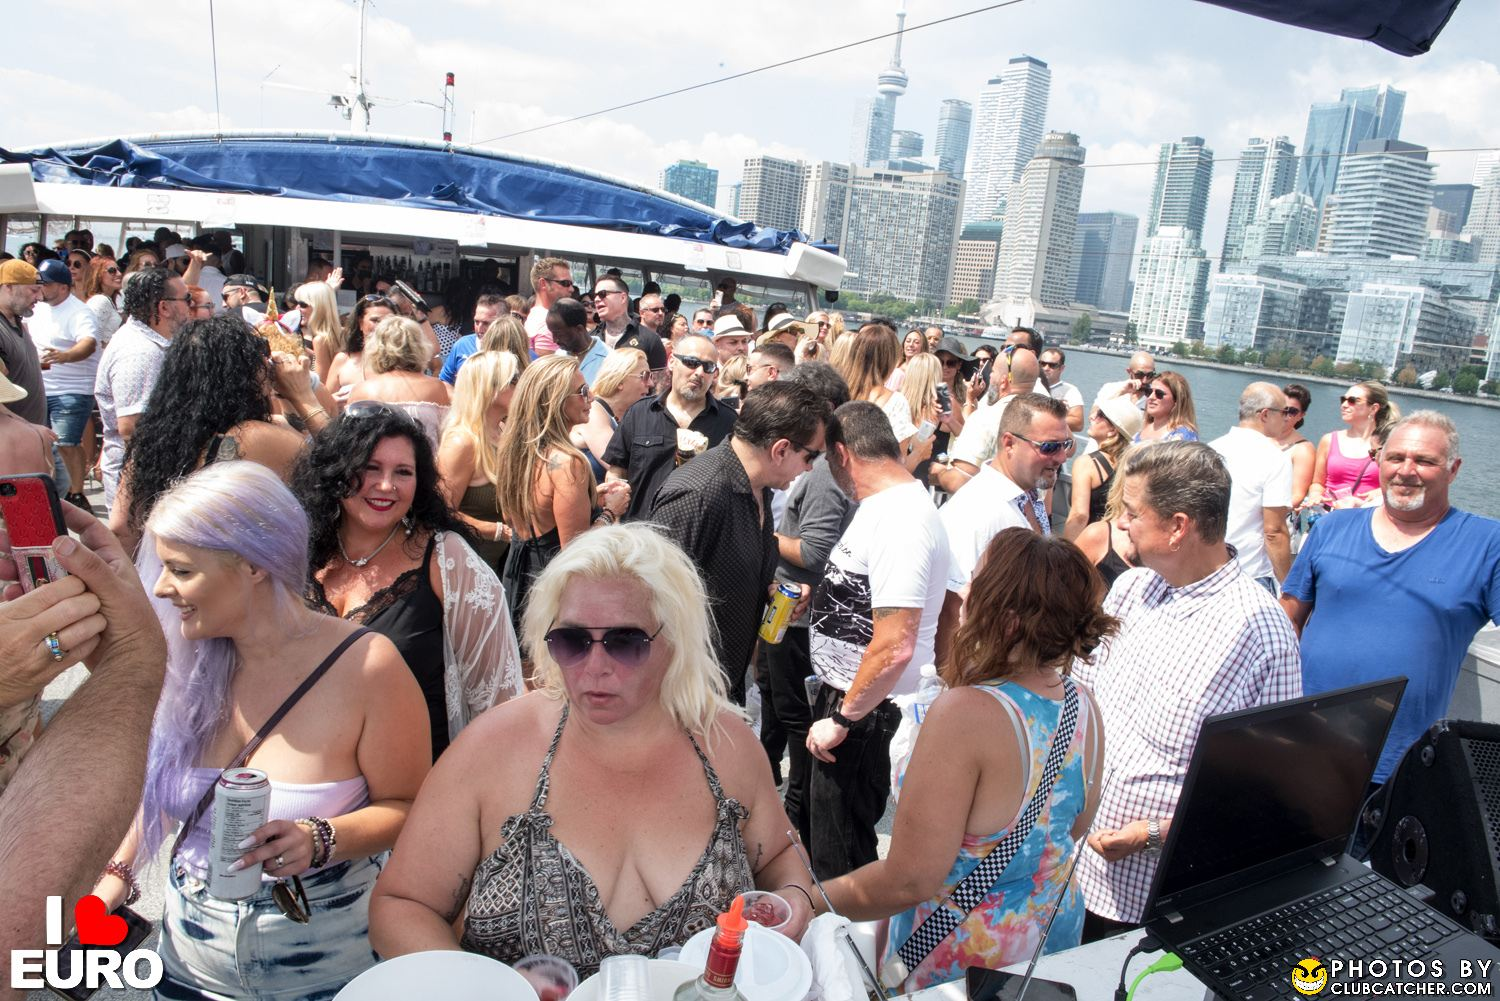 Empress Of Canada party venue photo 46 - August 22nd, 2021